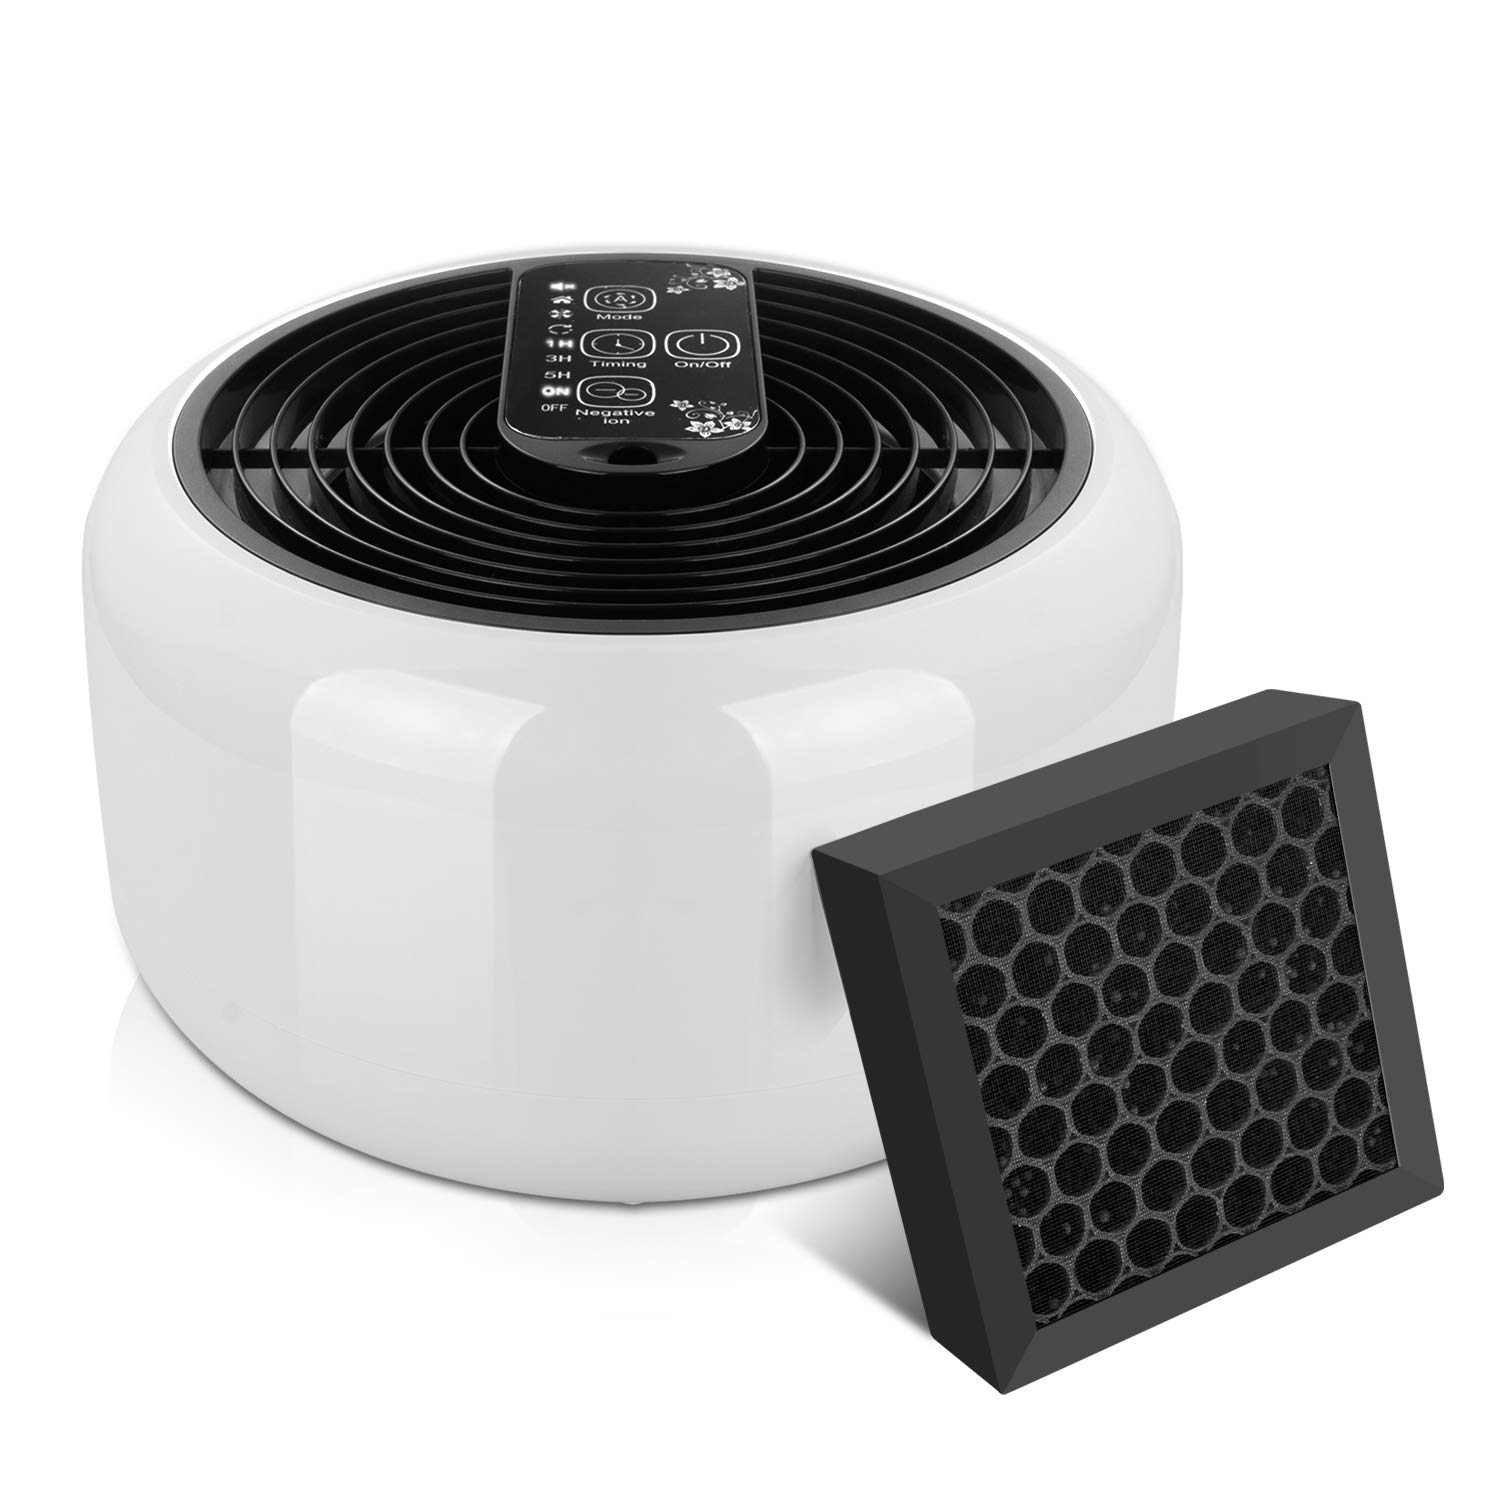 Aiskki Air Purifier, Air Cleaner with Aromatherapy Diffuser, 4 Premium Activated Carbon Pre Filters Removes Allergens, Dust & Pollen, Smoke and Pet Dander